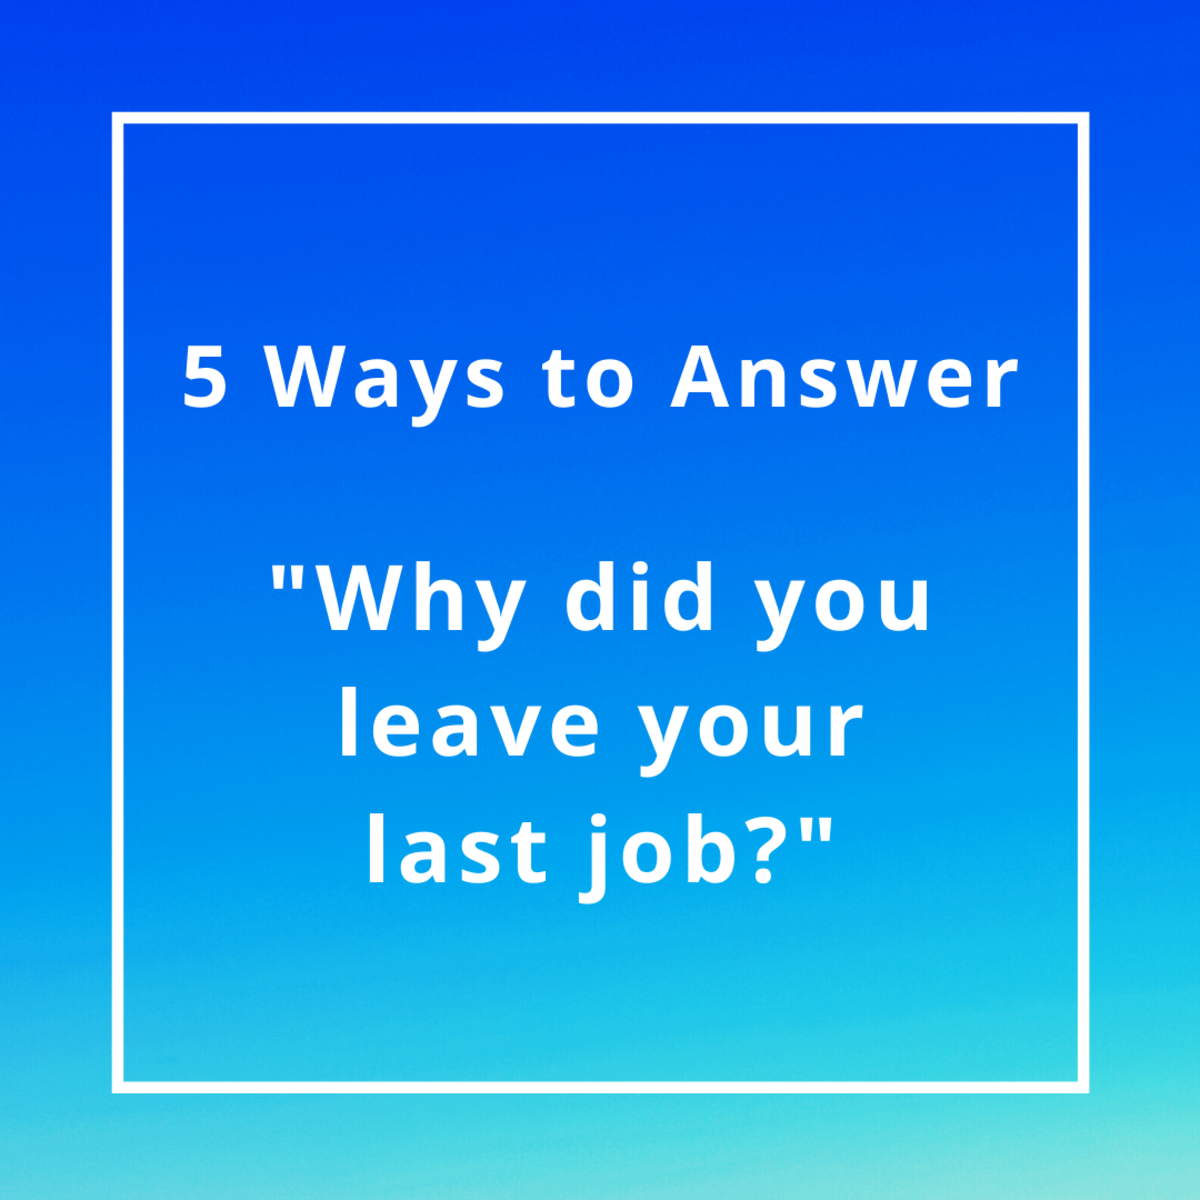 Why Did You Leave Your Last Job? 5 Ways to Answer This